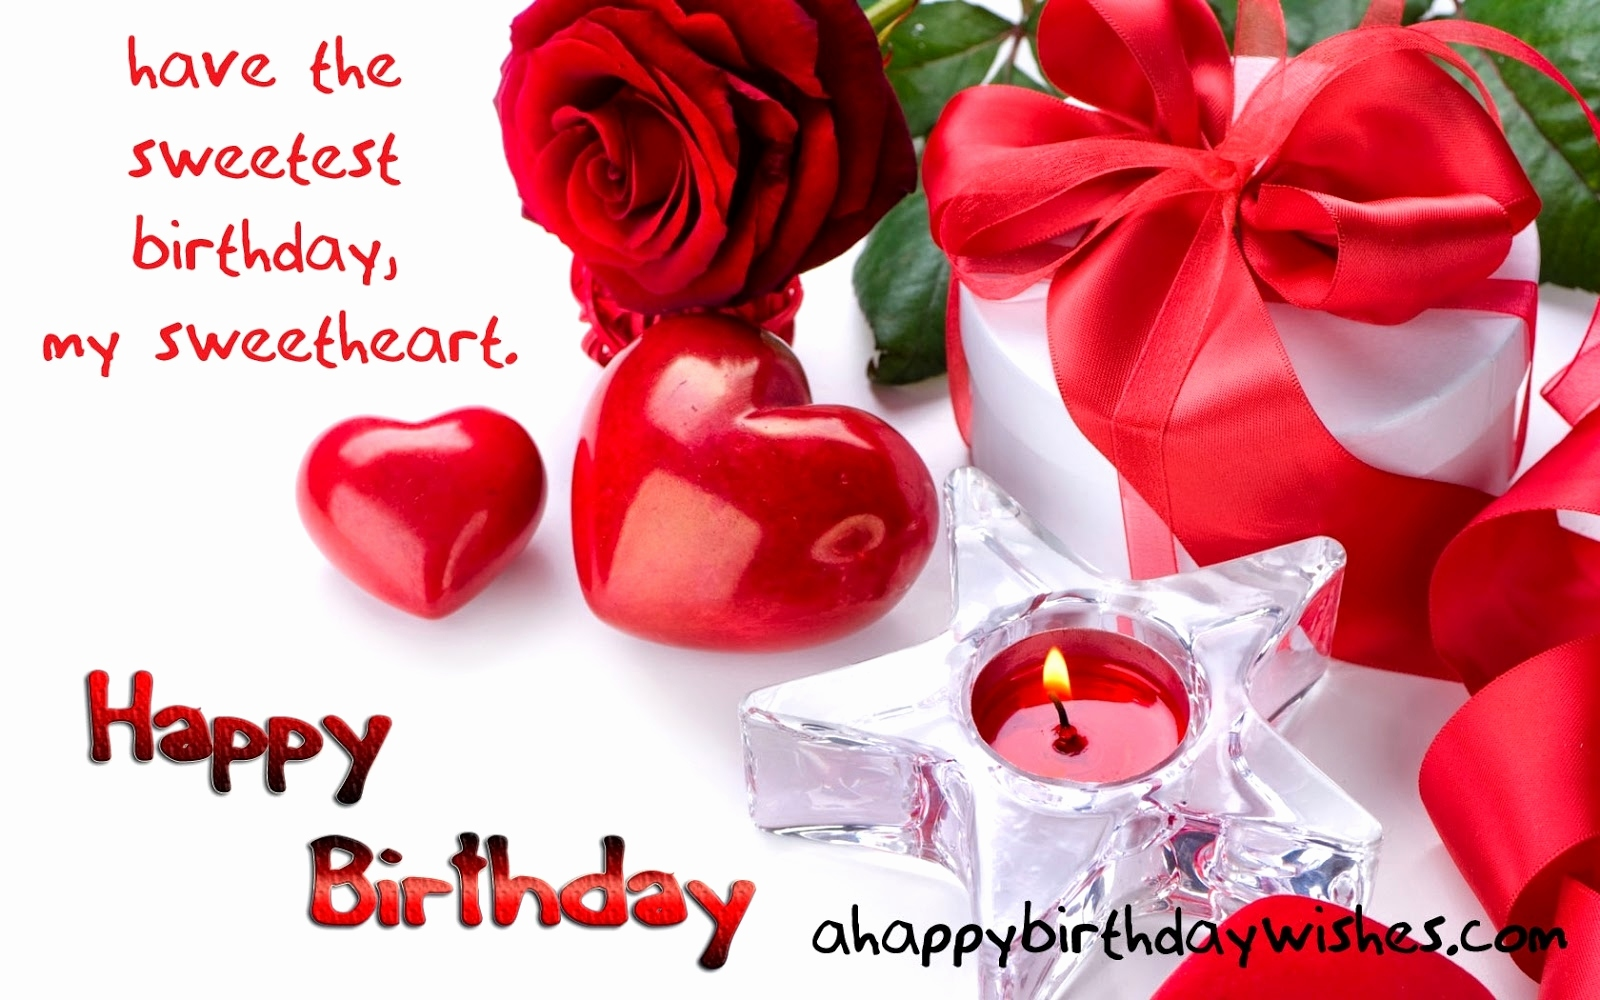 happy birthday wish for lover in hindi ; happy-birthday-wishes-to-lover-in-hindi-best-of-happiness-quotes-chic-happy-bday-quotes-for-her-happy-bday-quotes-of-happy-birthday-wishes-to-lover-in-hindi